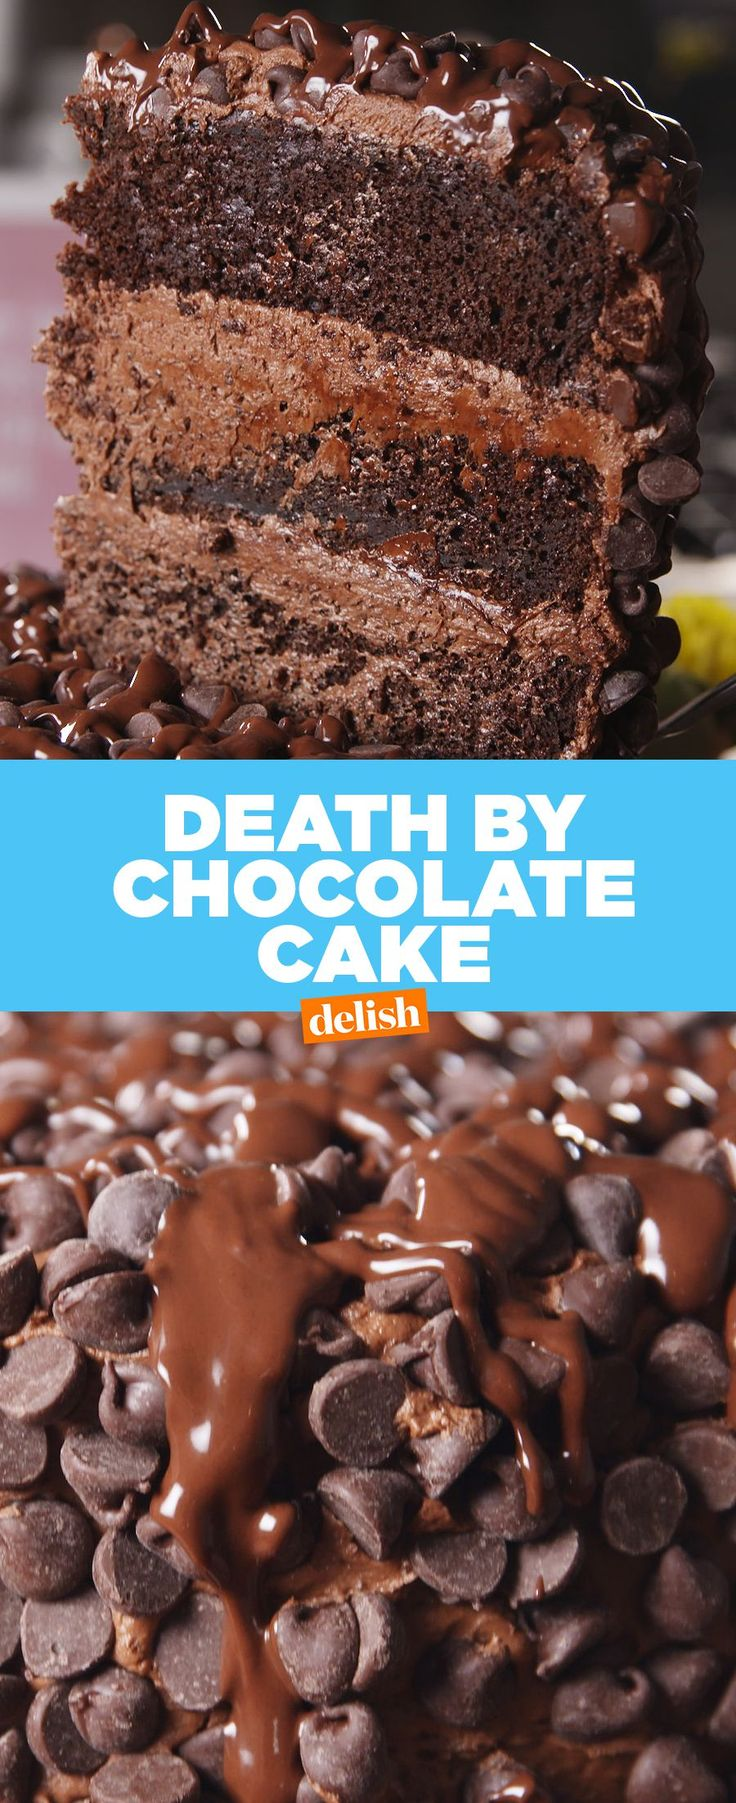 Death by Chocolate CakeDelish